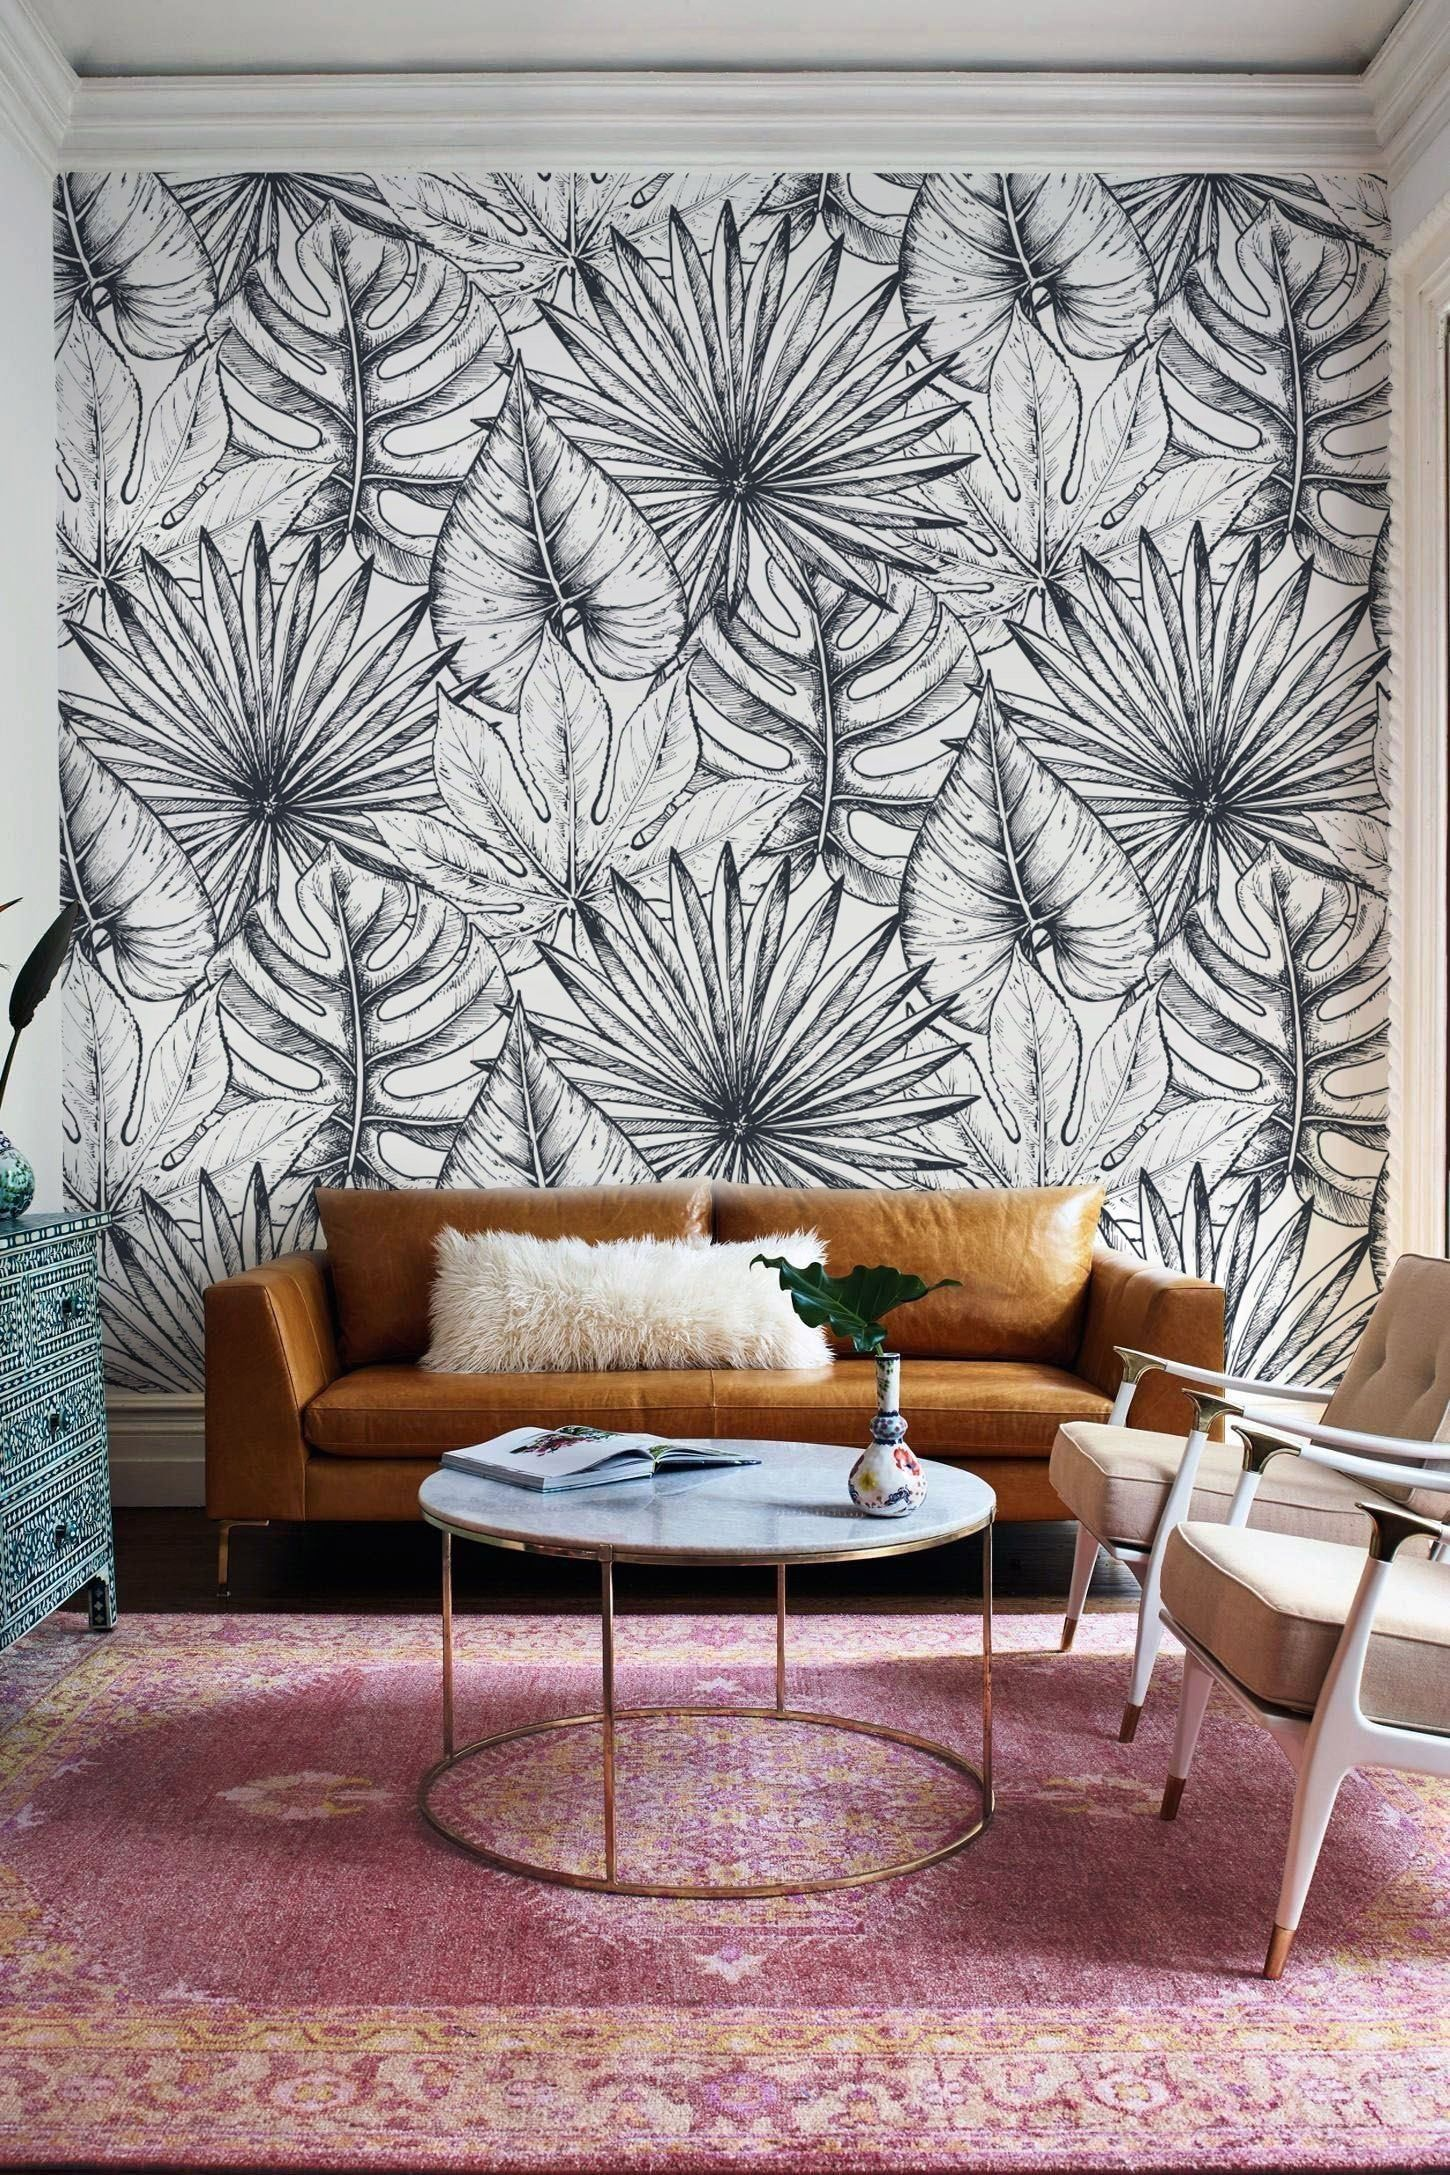 12 Peel Stick Wallpapers That Don T Look Like Wallpaper At All